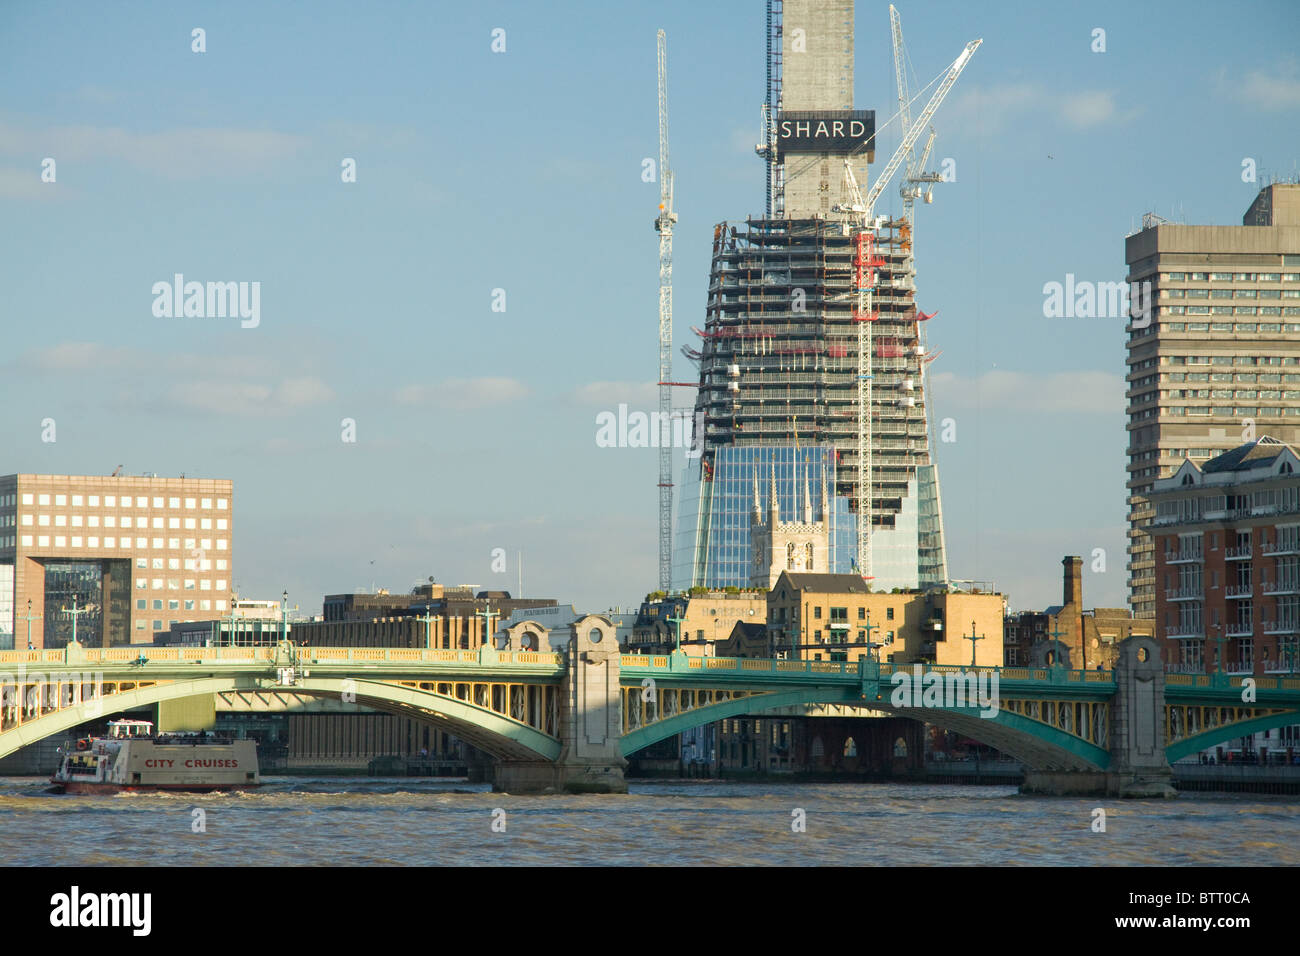 The Shard of Glass (Europe's tallest building) under construction, with Southwark Cathedral dwarfed in front - Stock Image